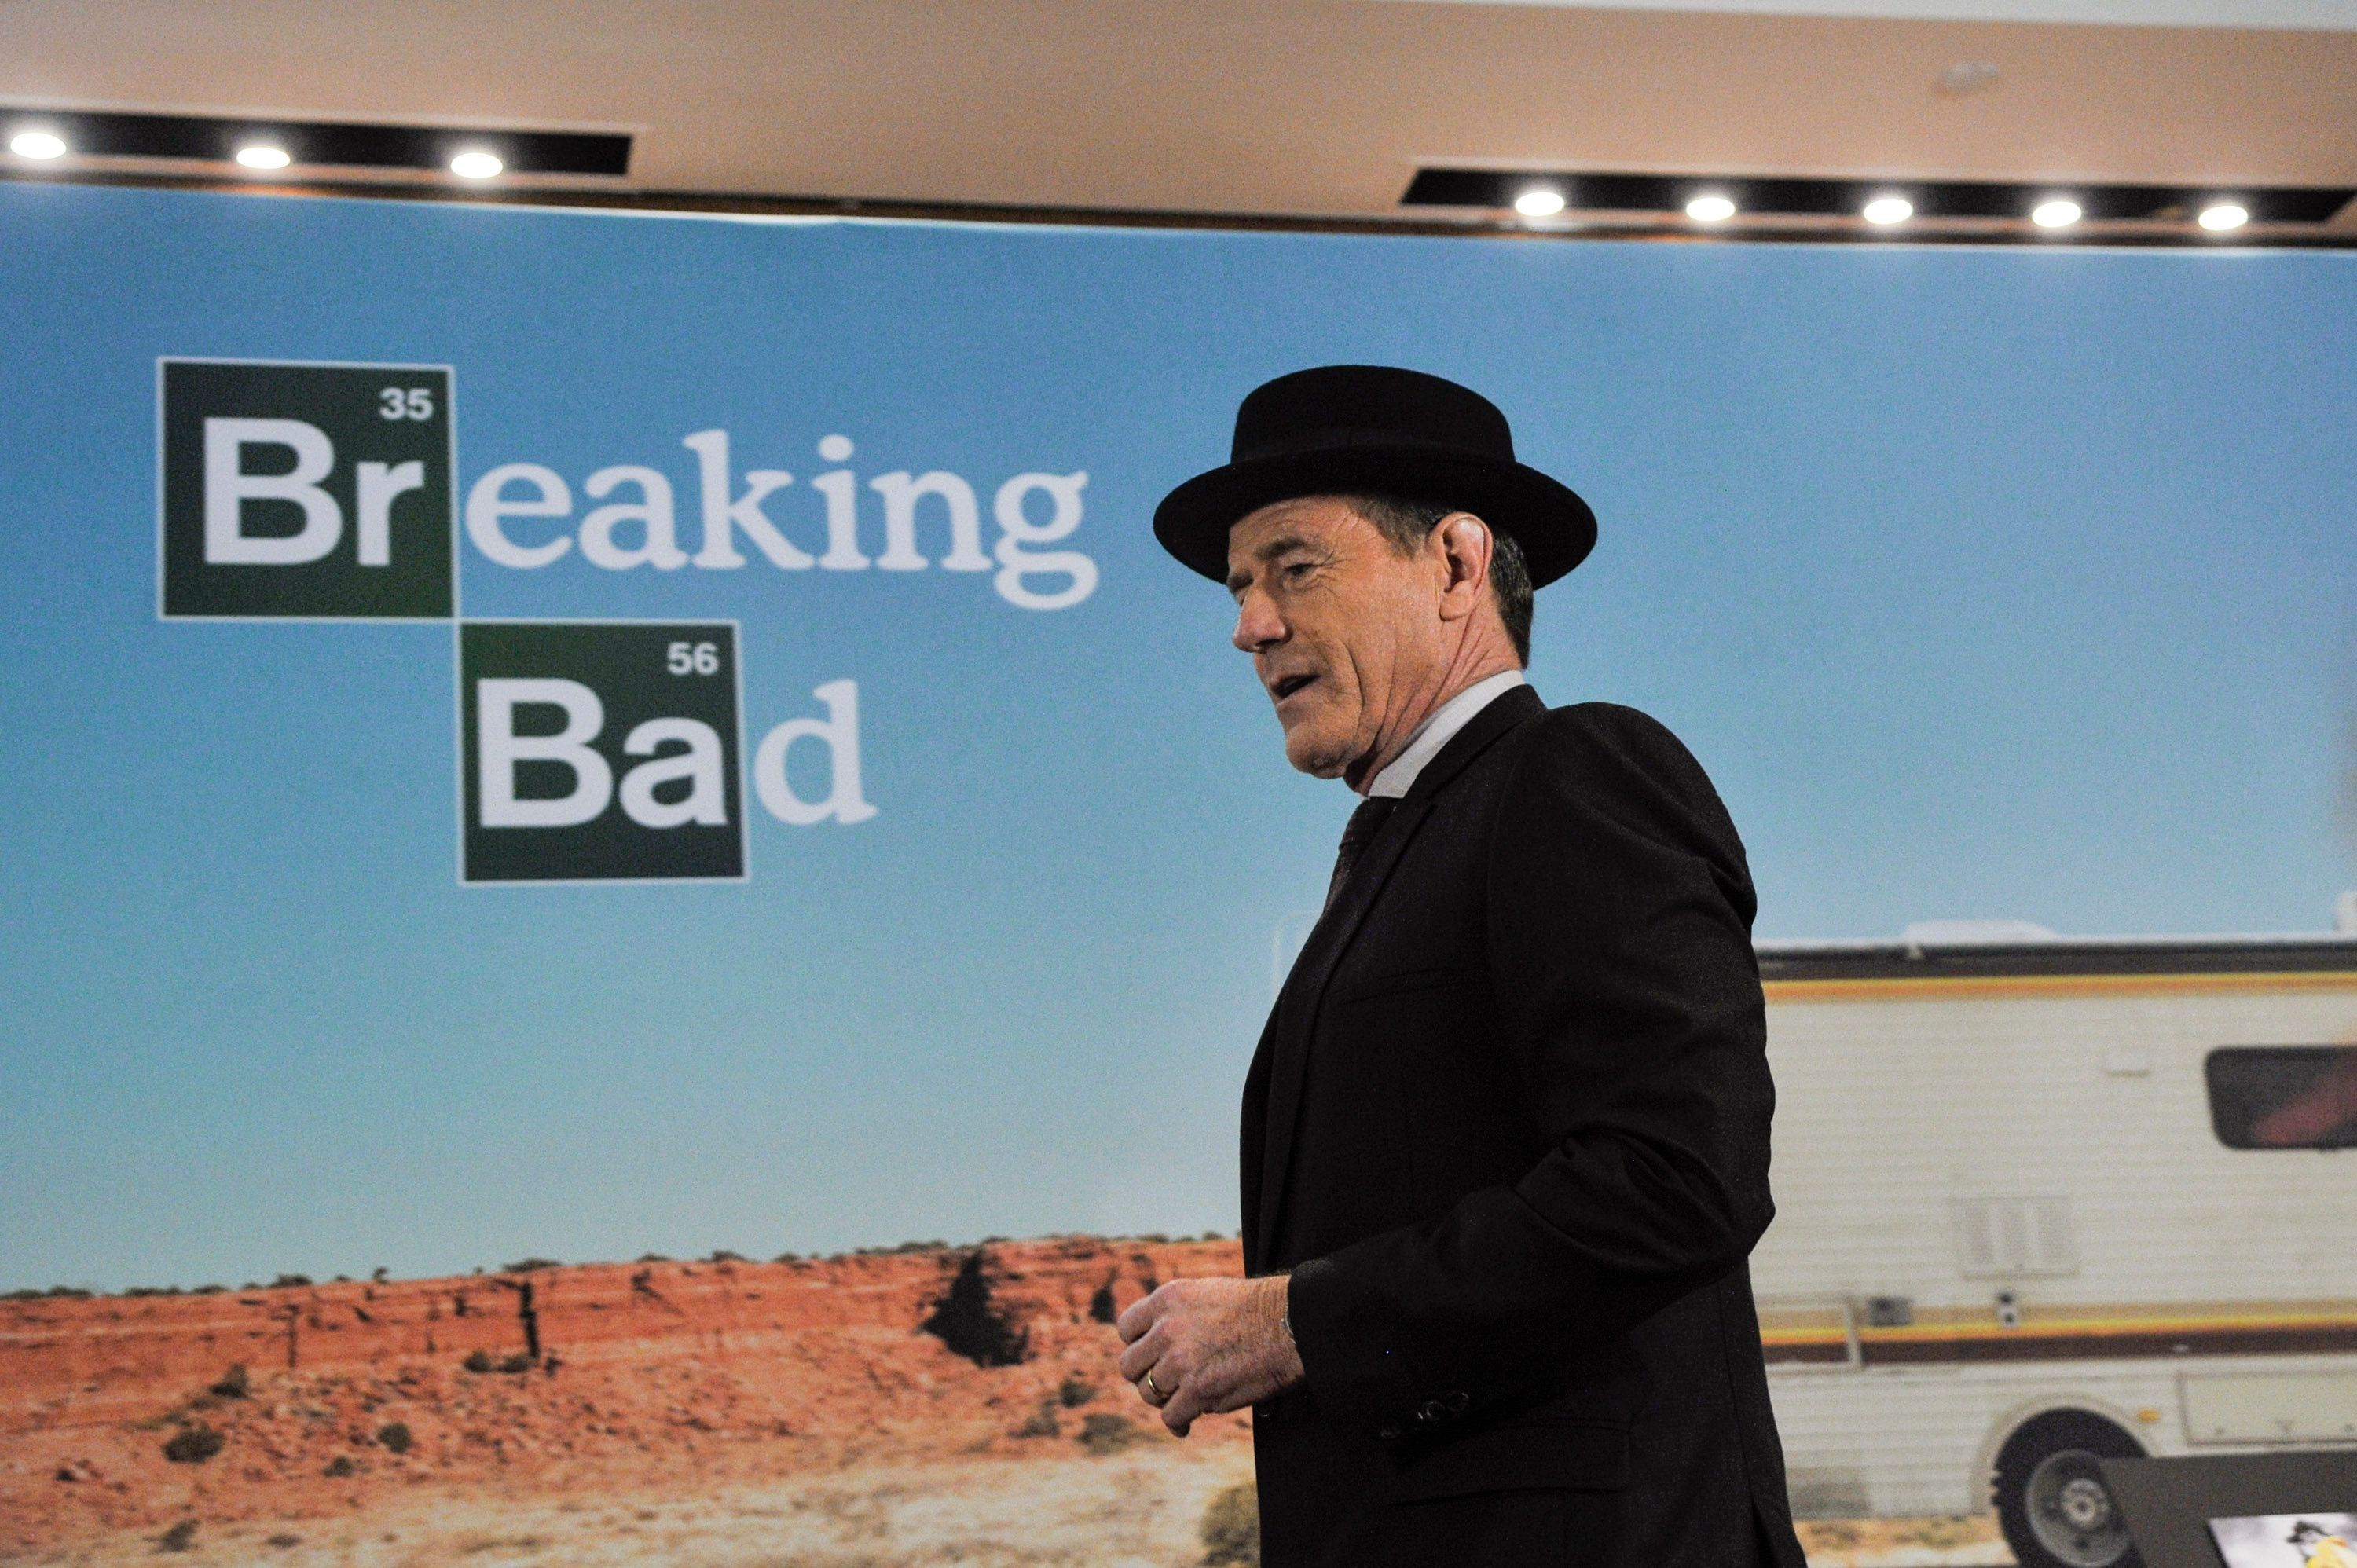 WASHINGTON, DC- NOVEMBER 10: Actor Bryan Cranston speaks with his 'The Heisenberg Hat' on during a donation ceremony of artifacts from AMC's 'Breaking Bad' show at Smithsonian's National Museum of American History  in Washington DC on November 10, 2015.  (Photo by Kris Connor/Getty Images)